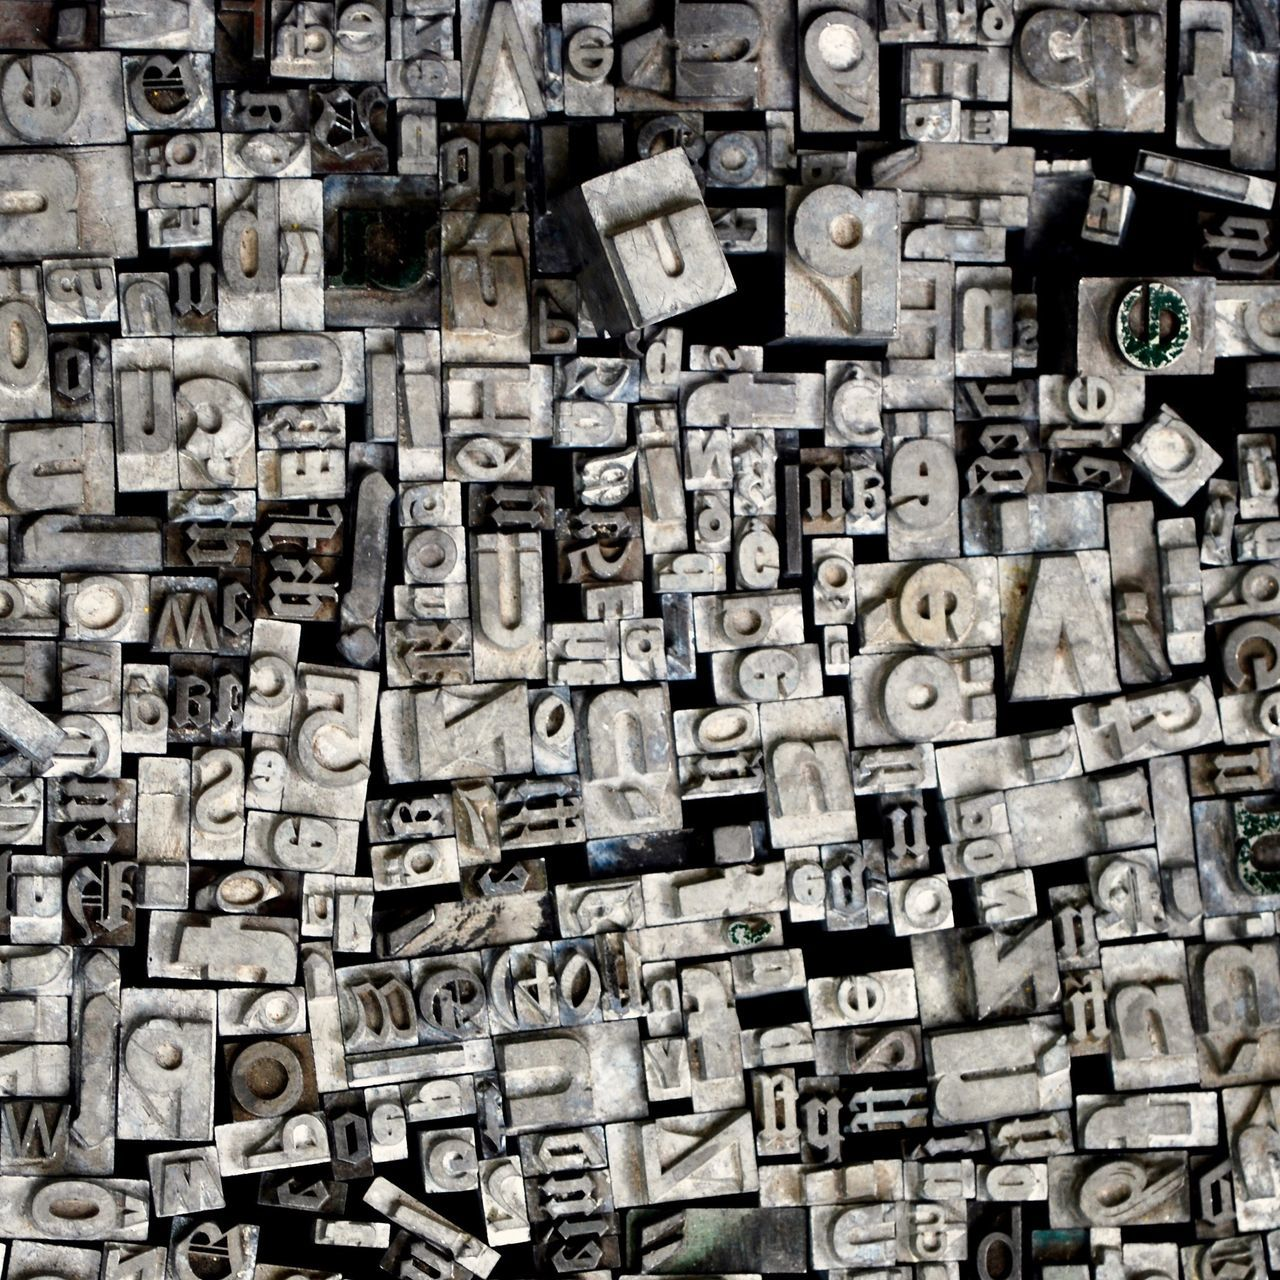 Beautifully Organized Text Backgrounds Alphabet Muster Mix Printing Press Technology Big Data Full Frame Abstract Things Organized Neatly Fine Art Typo Around The World Textures And Surfaces Typography Typo Black And White Rows Of Things EyeEm Best Shots EyeEm Masterclass Close Up Technology